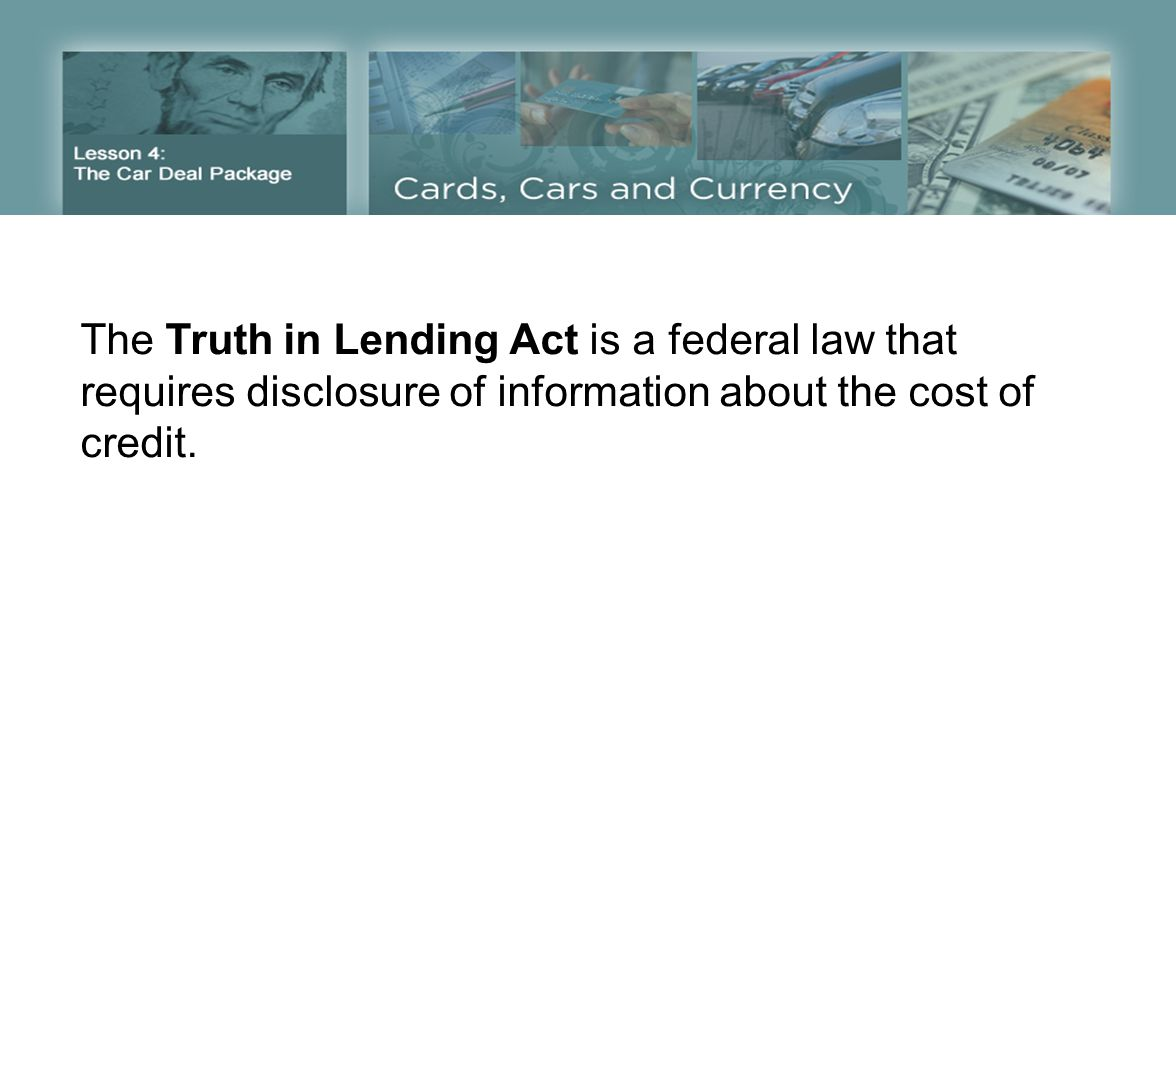 The Truth in Lending Act is a federal law that requires disclosure of information about the cost of credit.